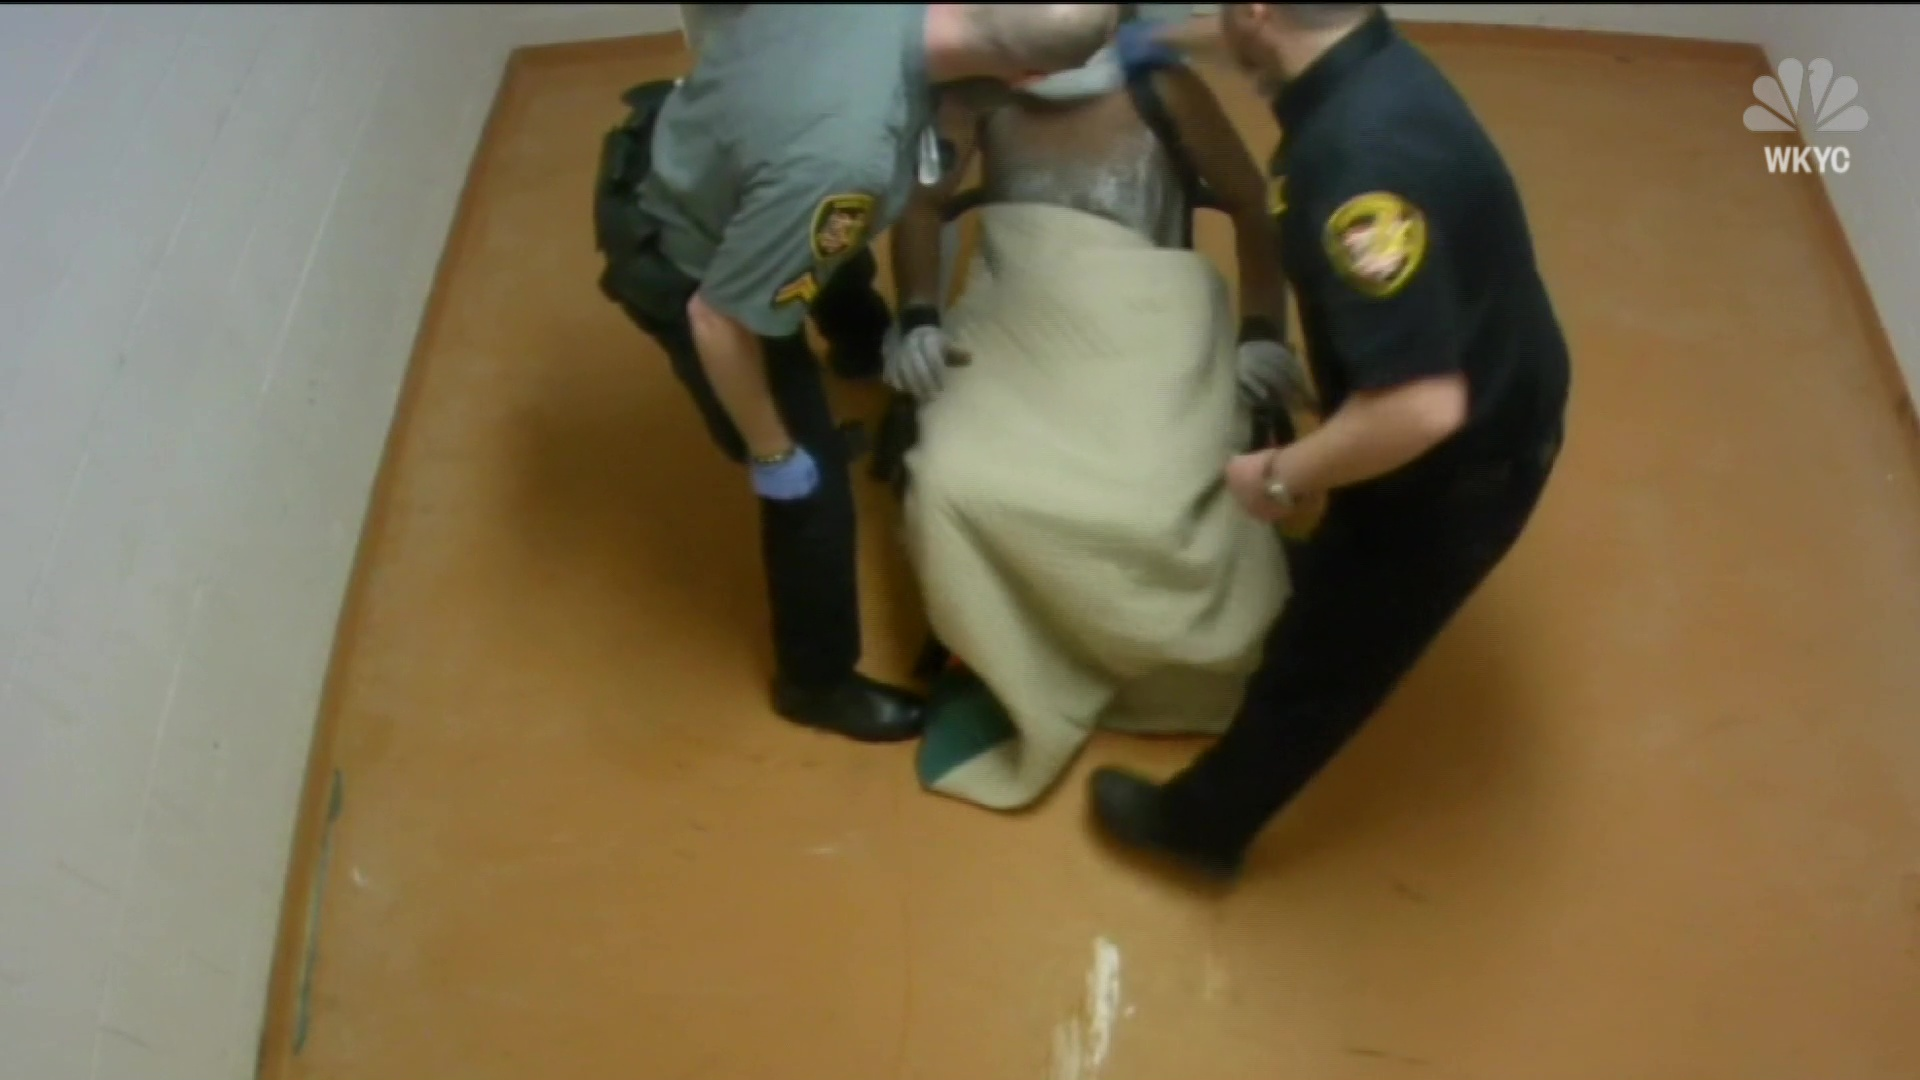 Video reveals shocking abuse at Cuyahoga County Jail | NBC4